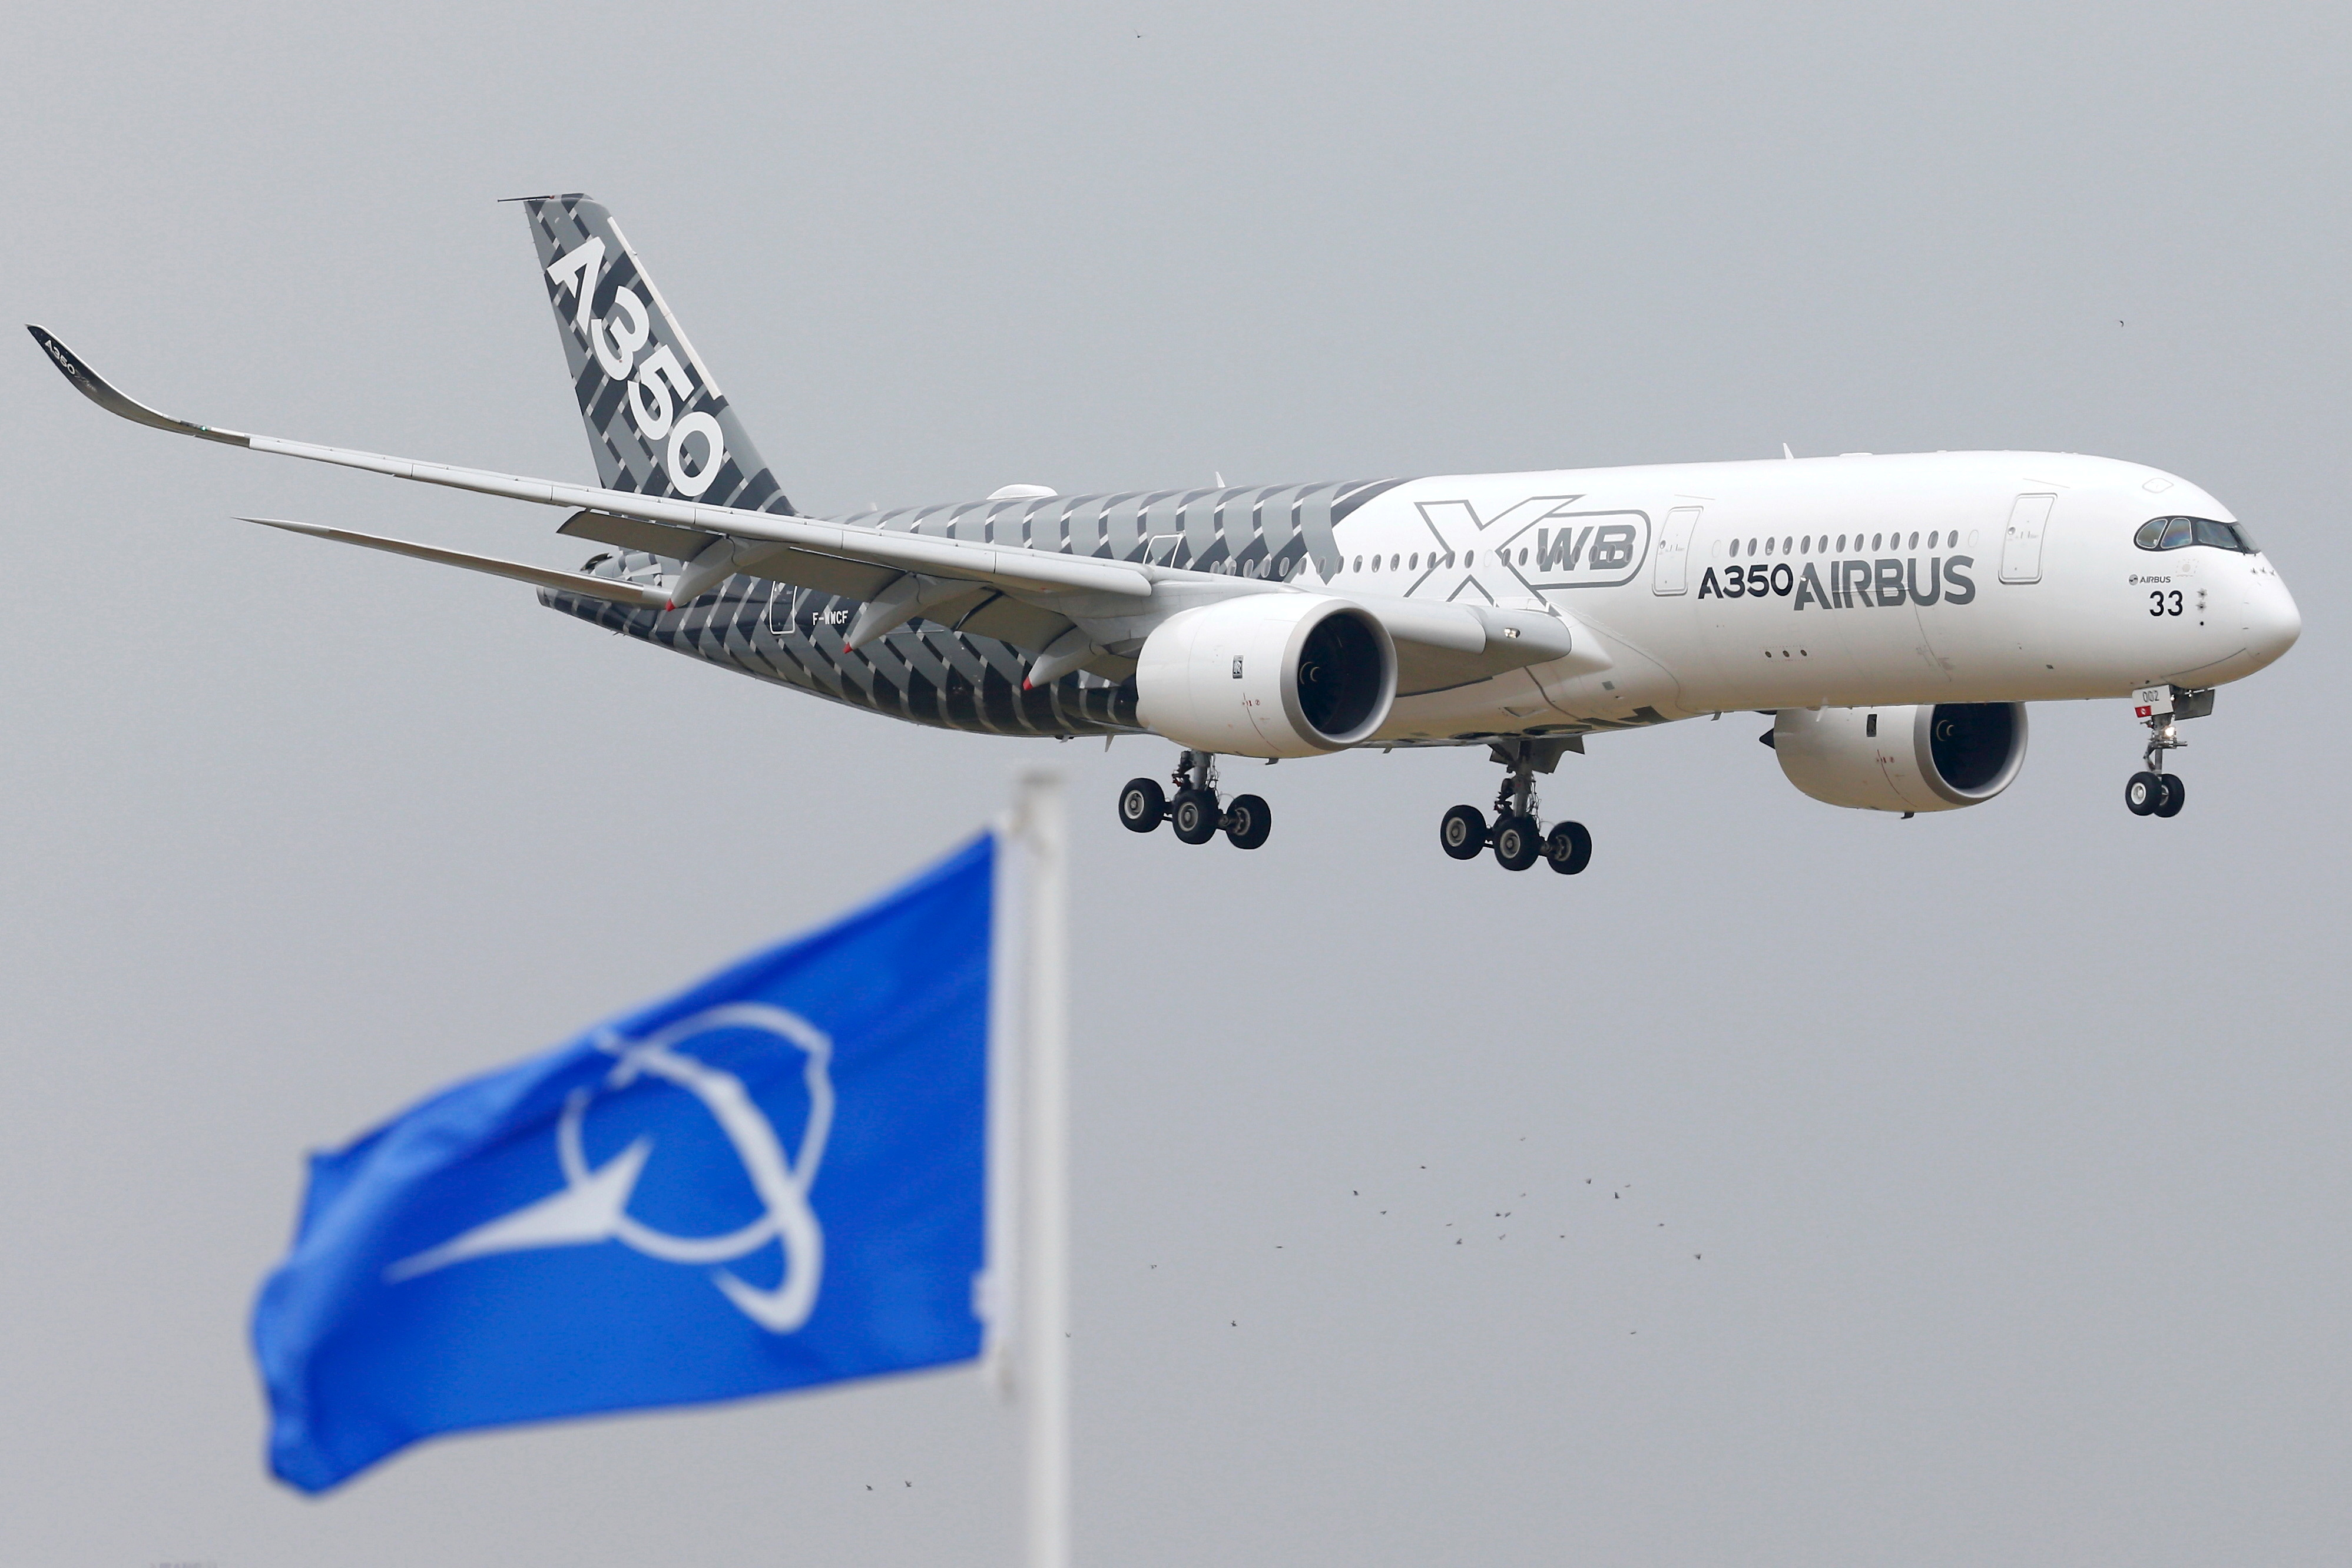 Airbus: After 17 years, potential truce looms in U.S.-Europe jet subsidy war